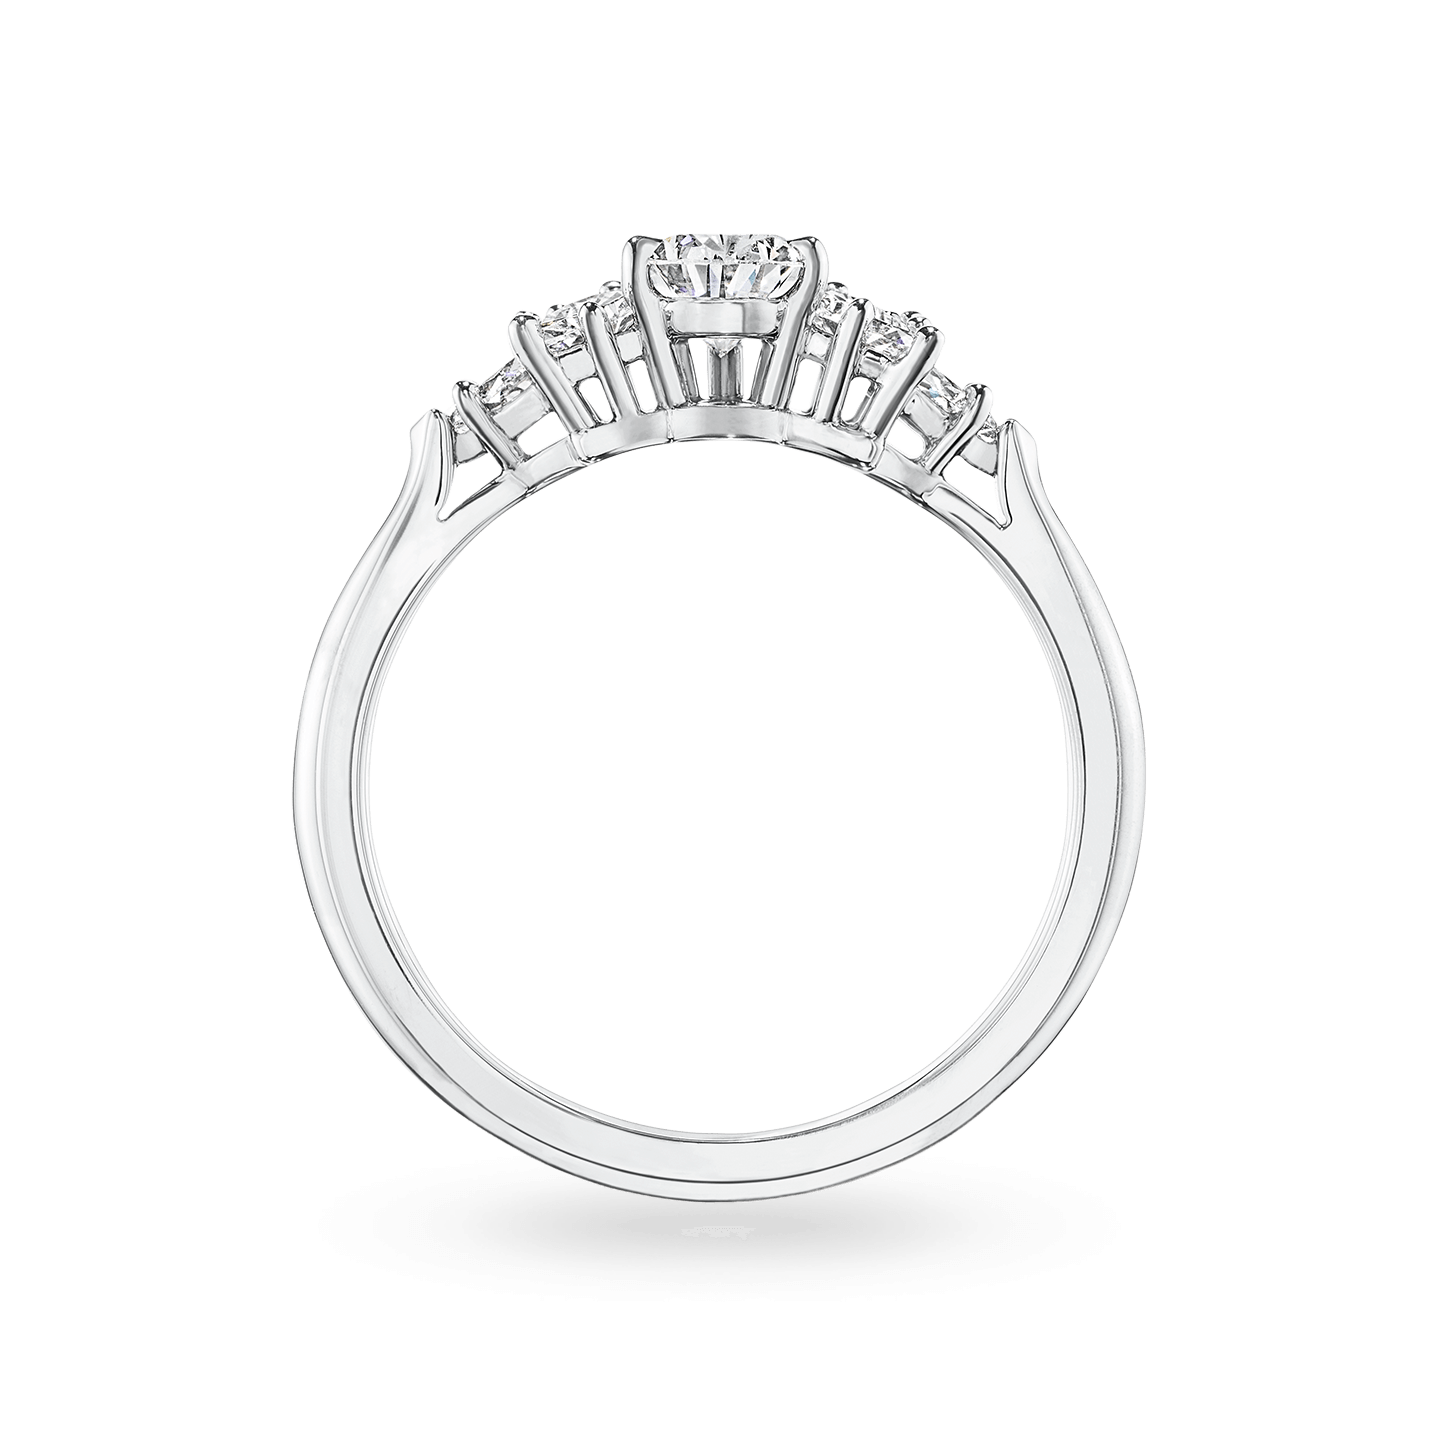 Pear-Shaped Cluster Diamond Engagement Ring, Product Image 2